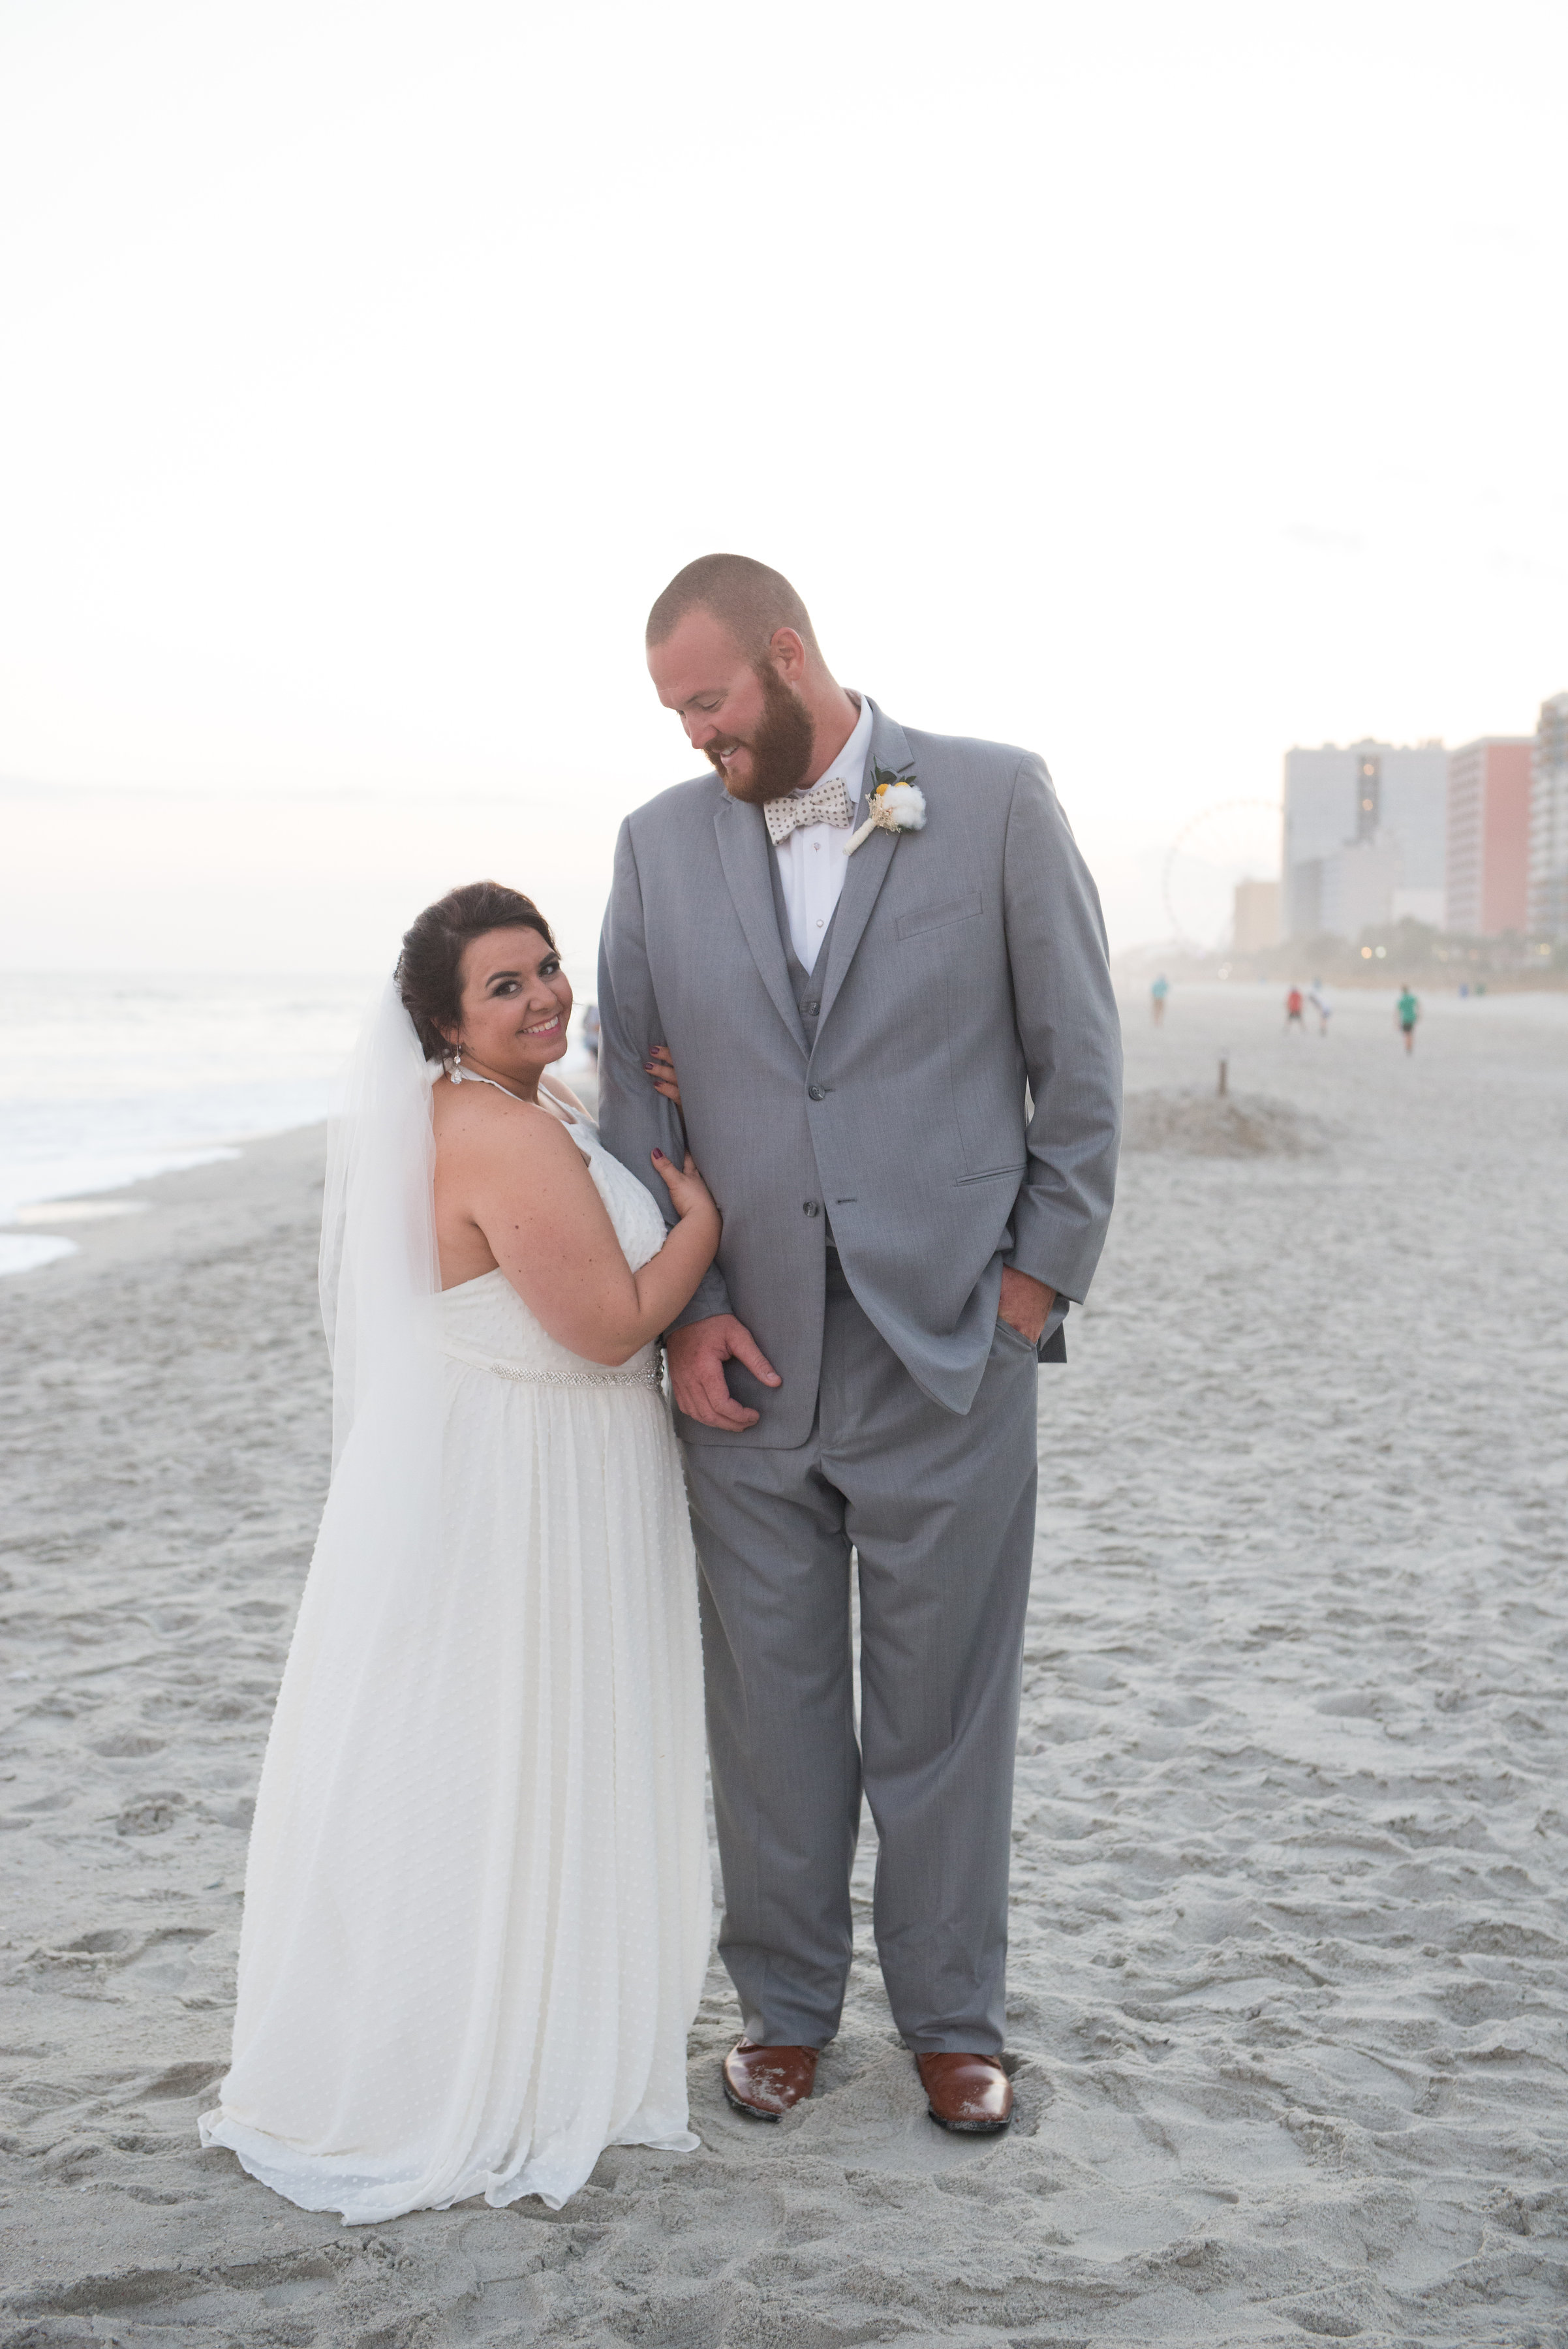 Myrtle Beach, SC Bride & Groom